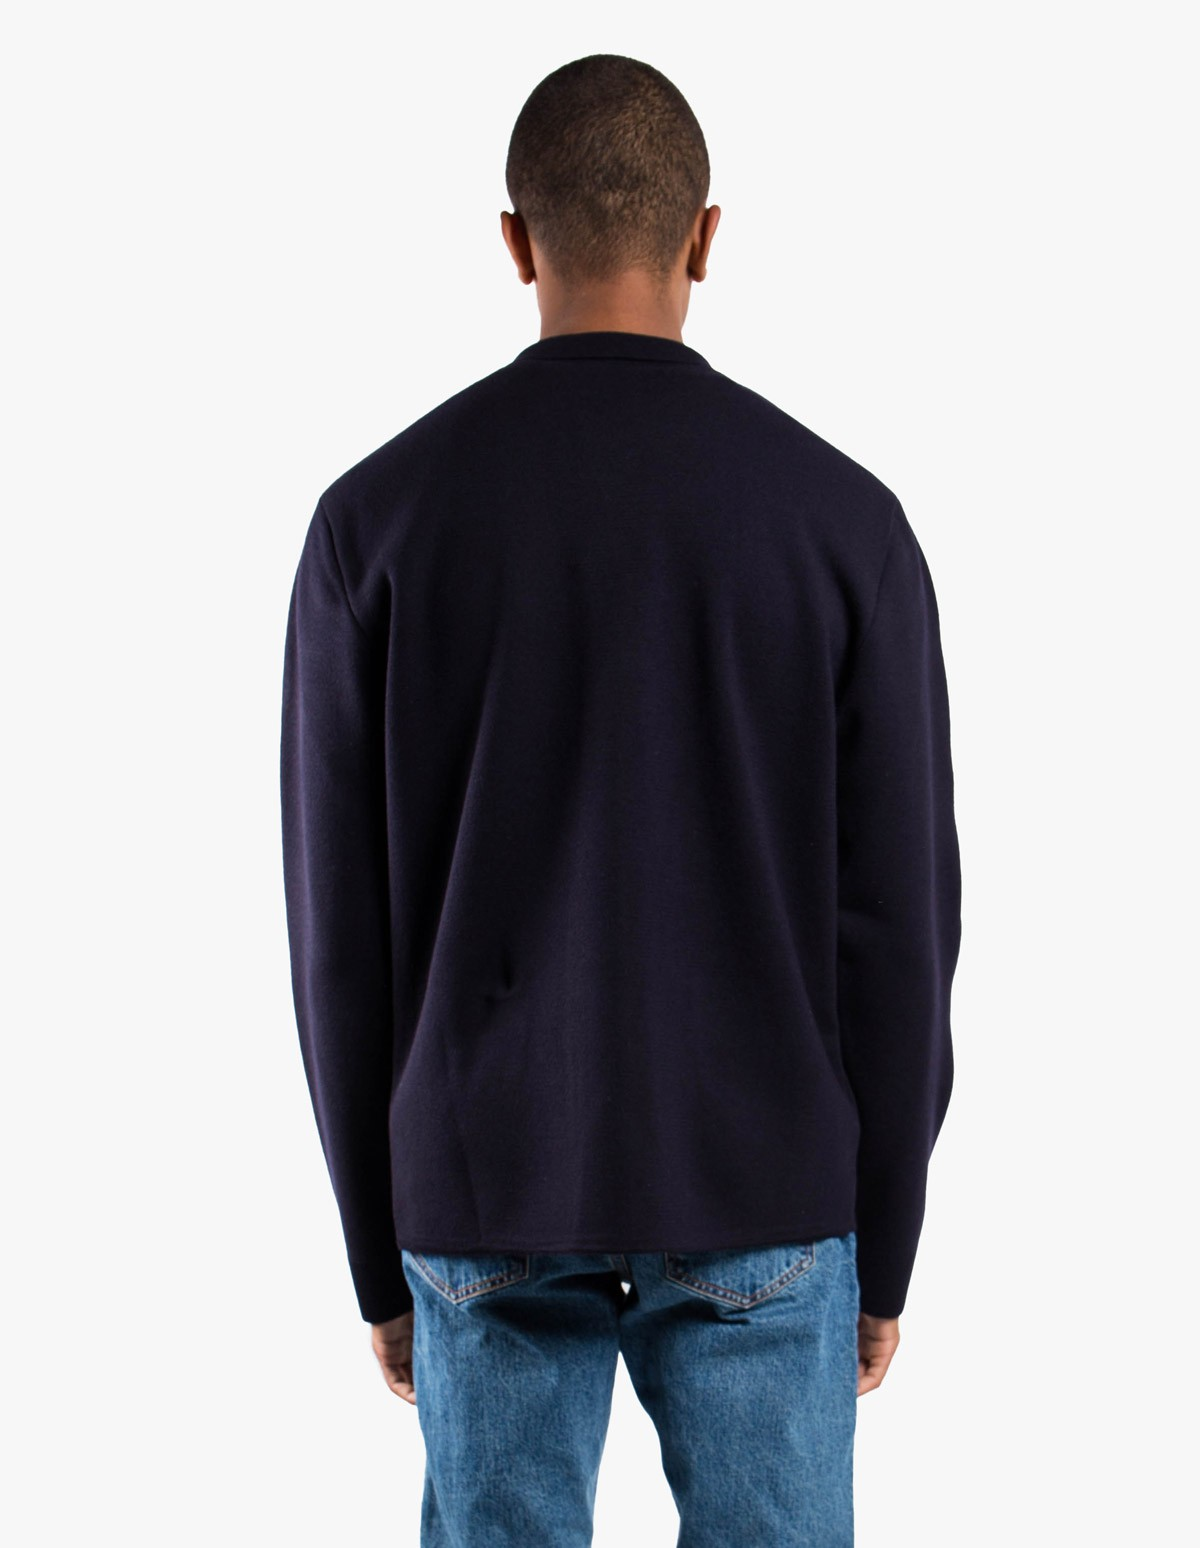 Sunspel Milano Jacket in Navy